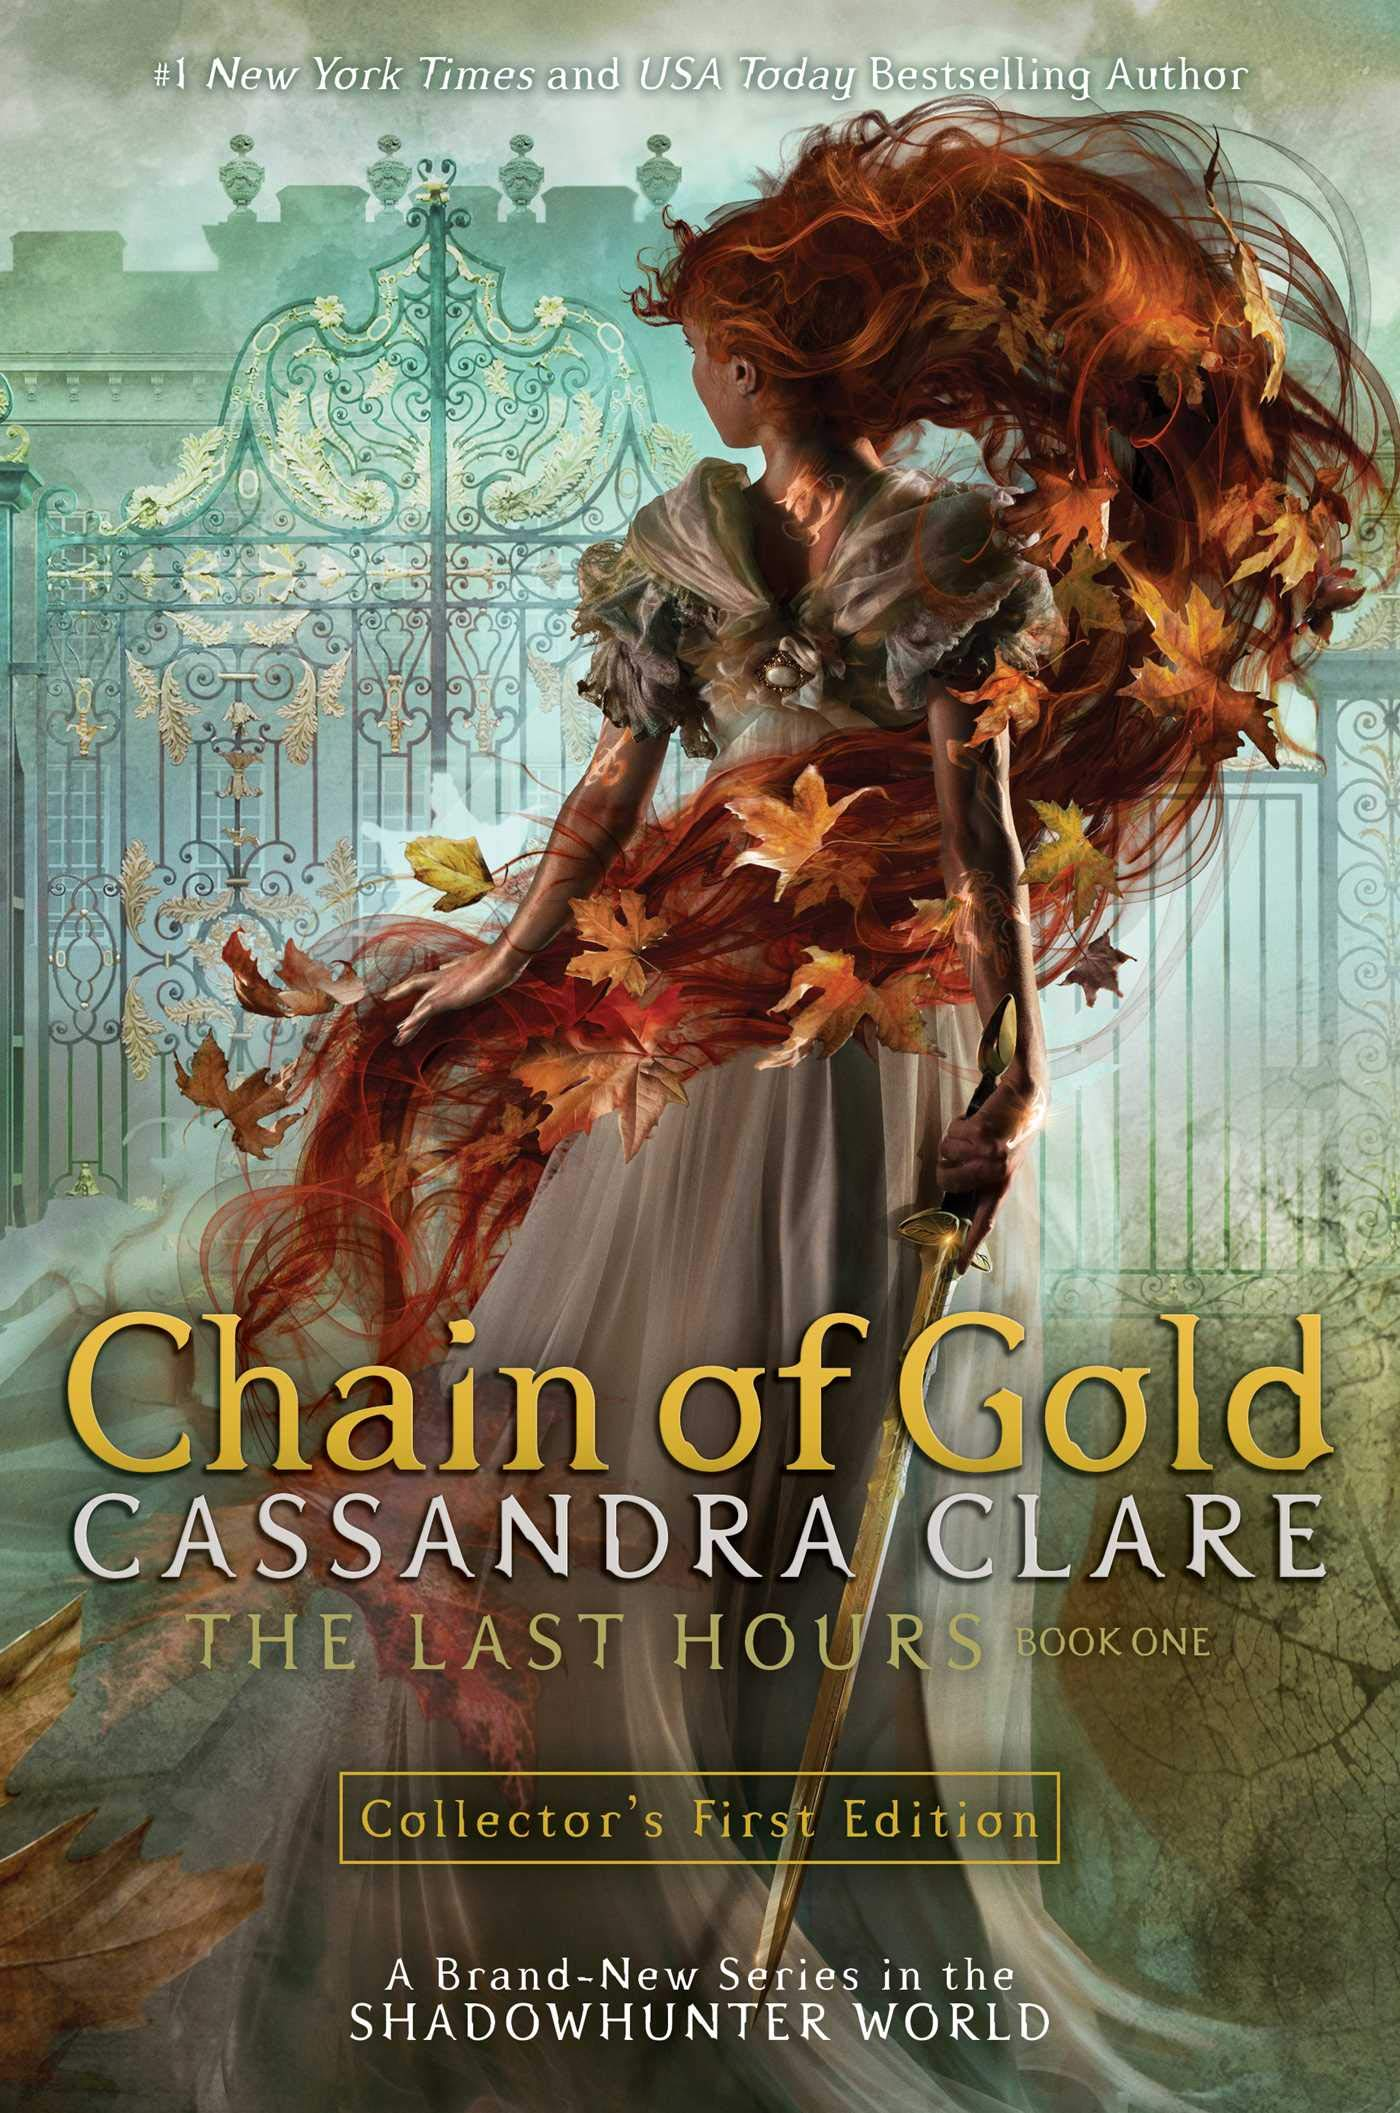 Amazon.com: Chain of Gold (1) (The Last Hours) (9781481431873 ...